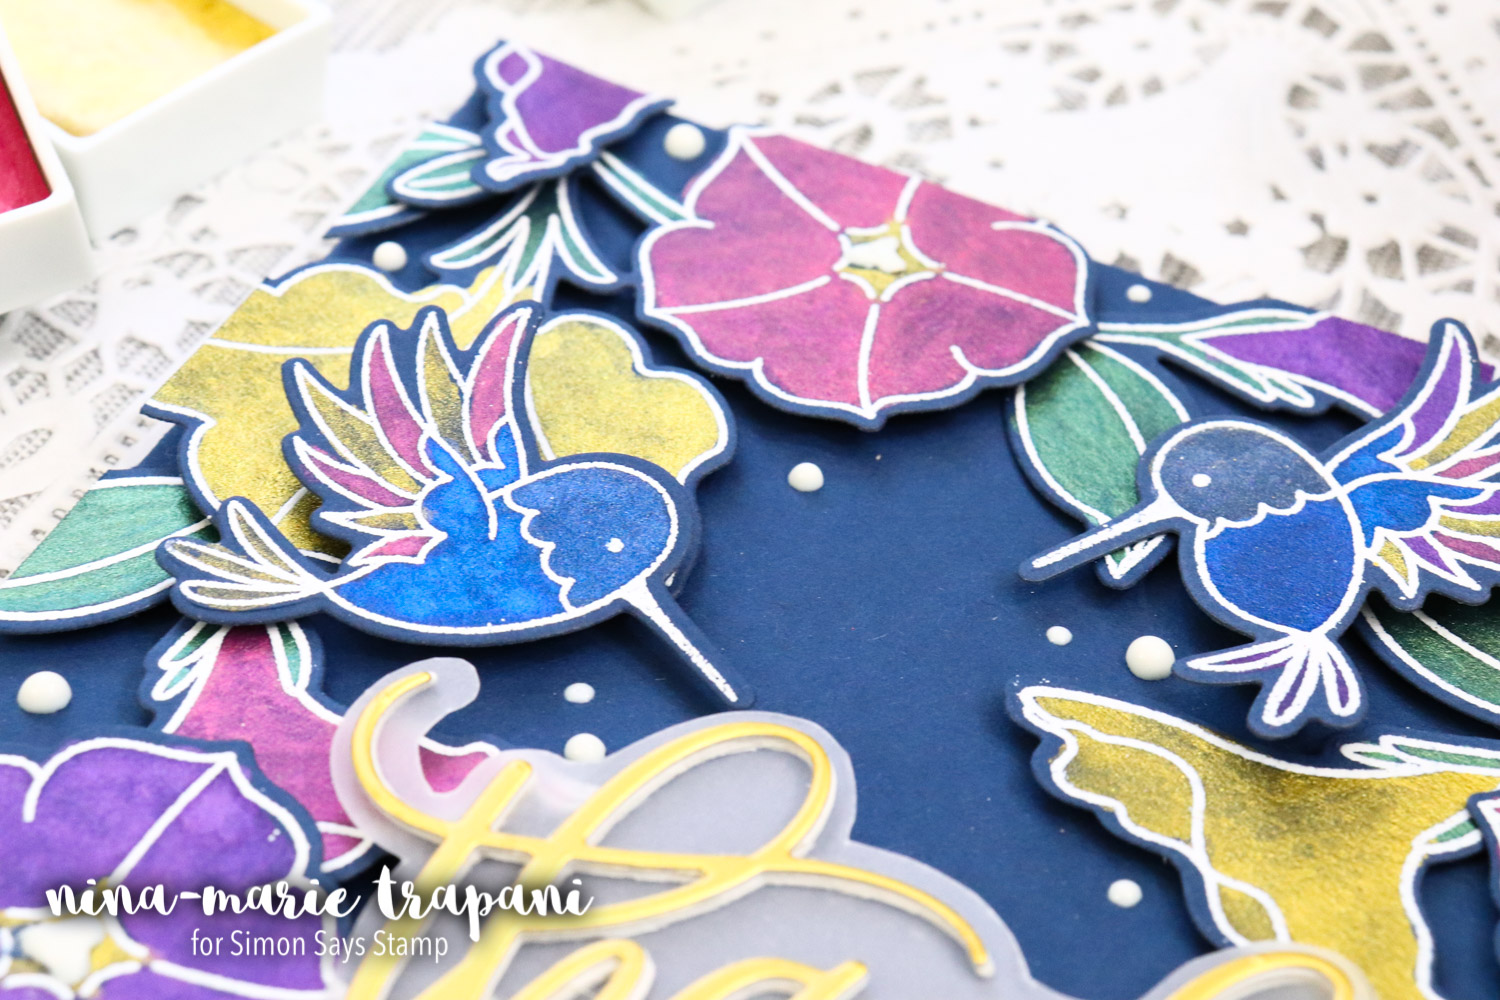 Studio Monday with Nina-Marie: Zig Gem Watercolors on Dark Cardstock